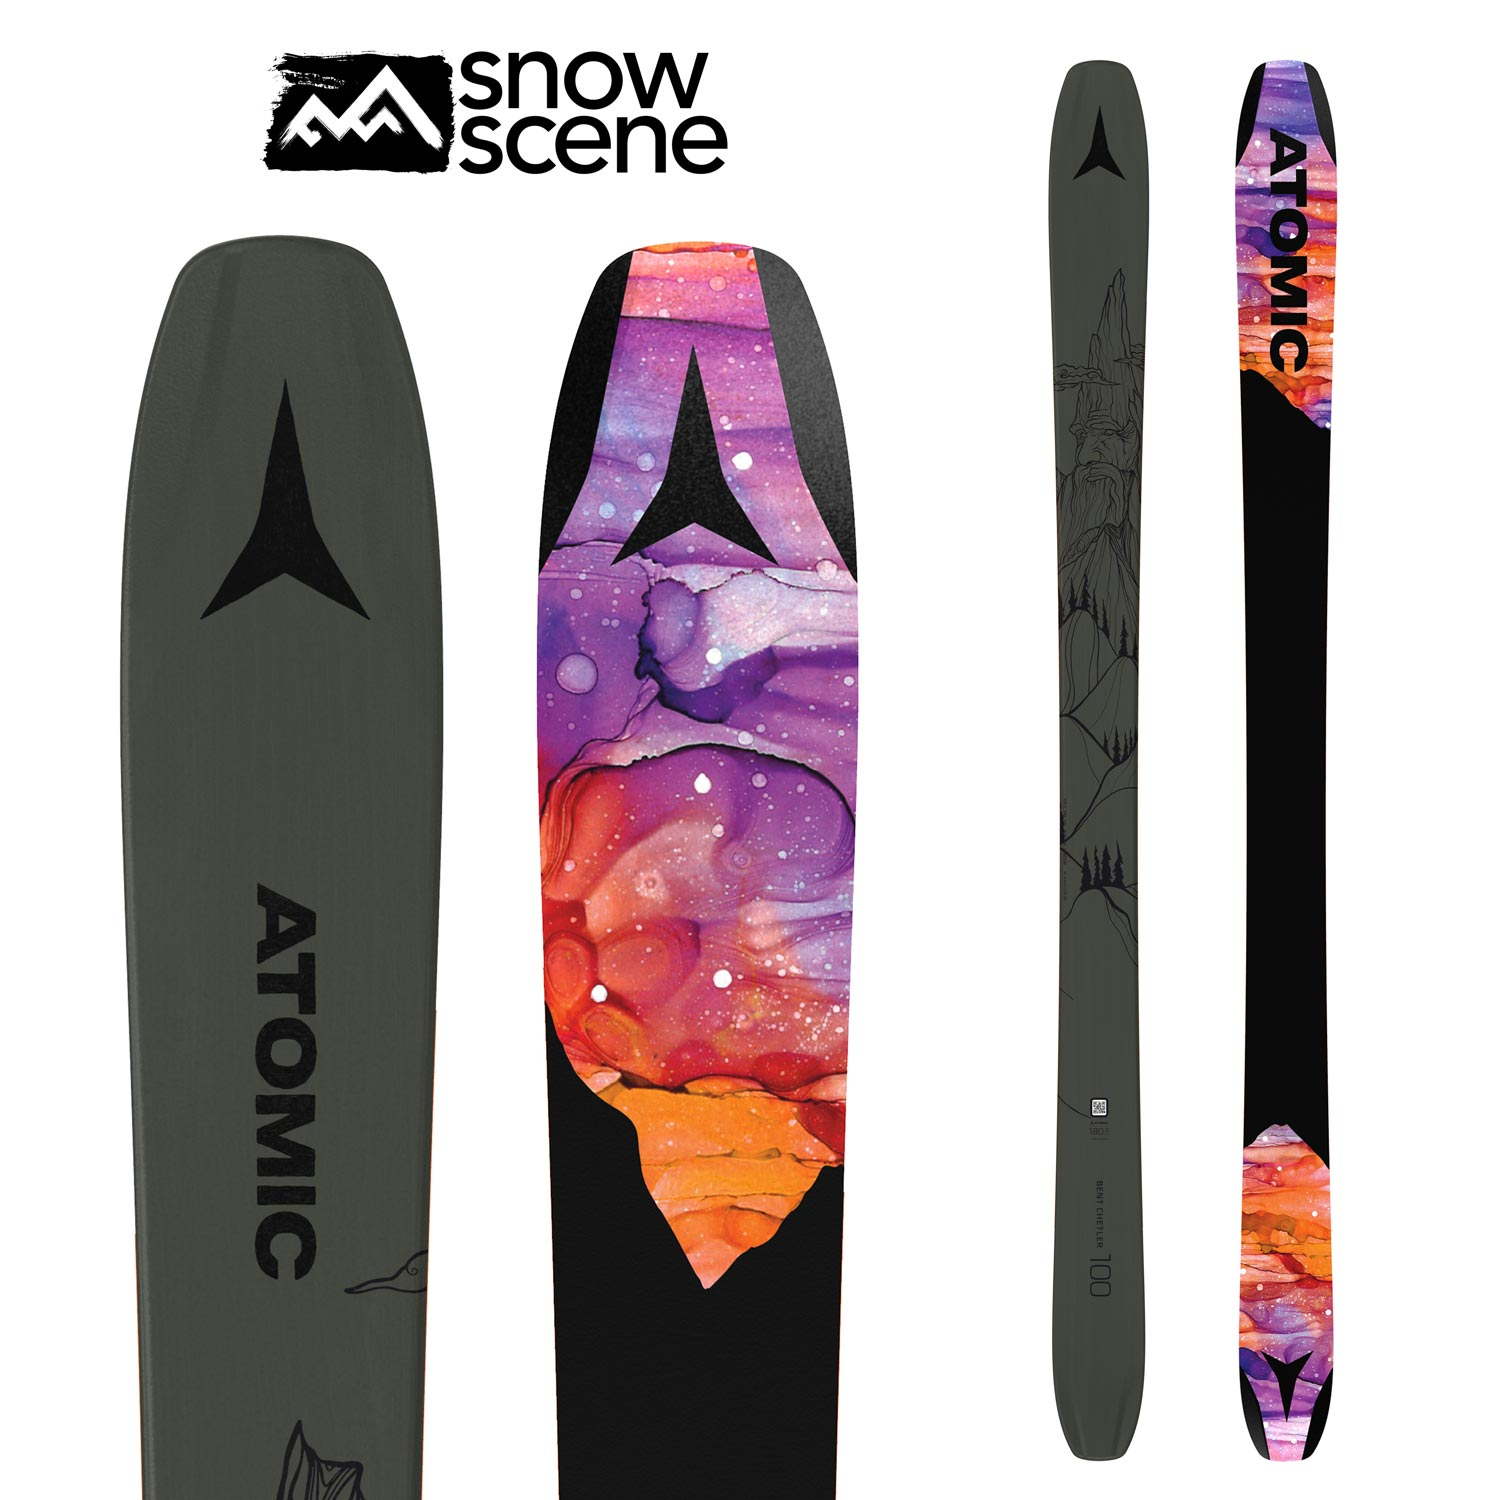 2021 Atomic Bent Chetler 100- Shop Skis and snow gear online nz - snowscene